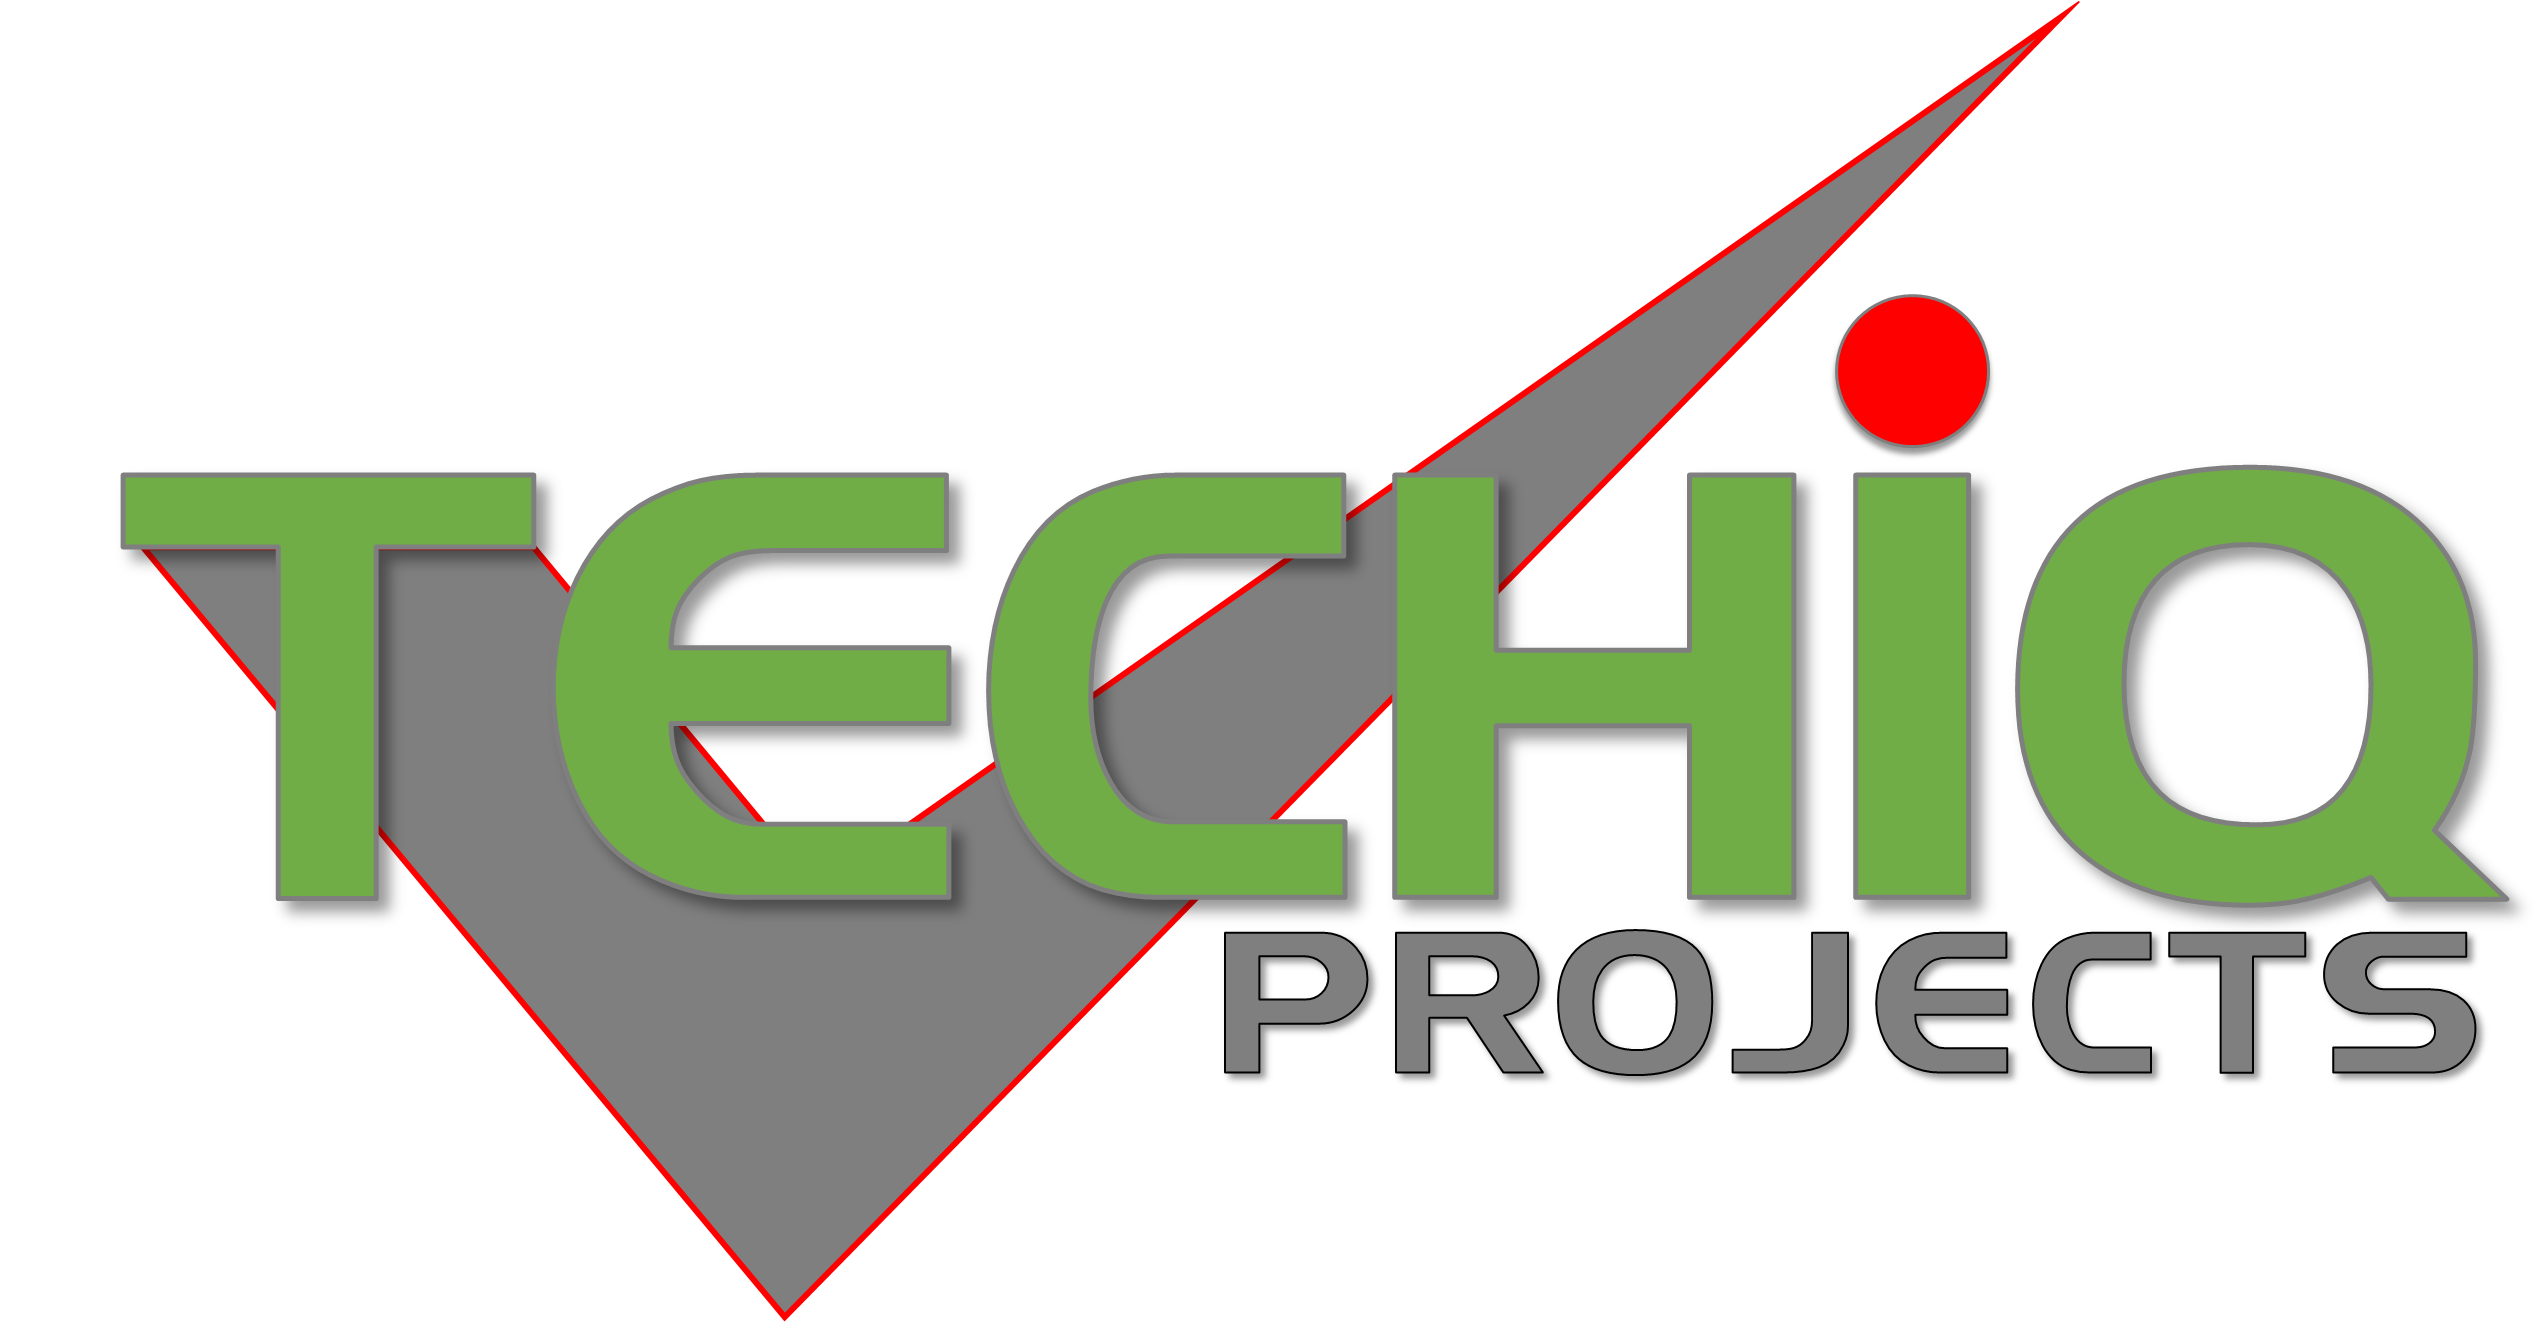 PROJECTSLogo